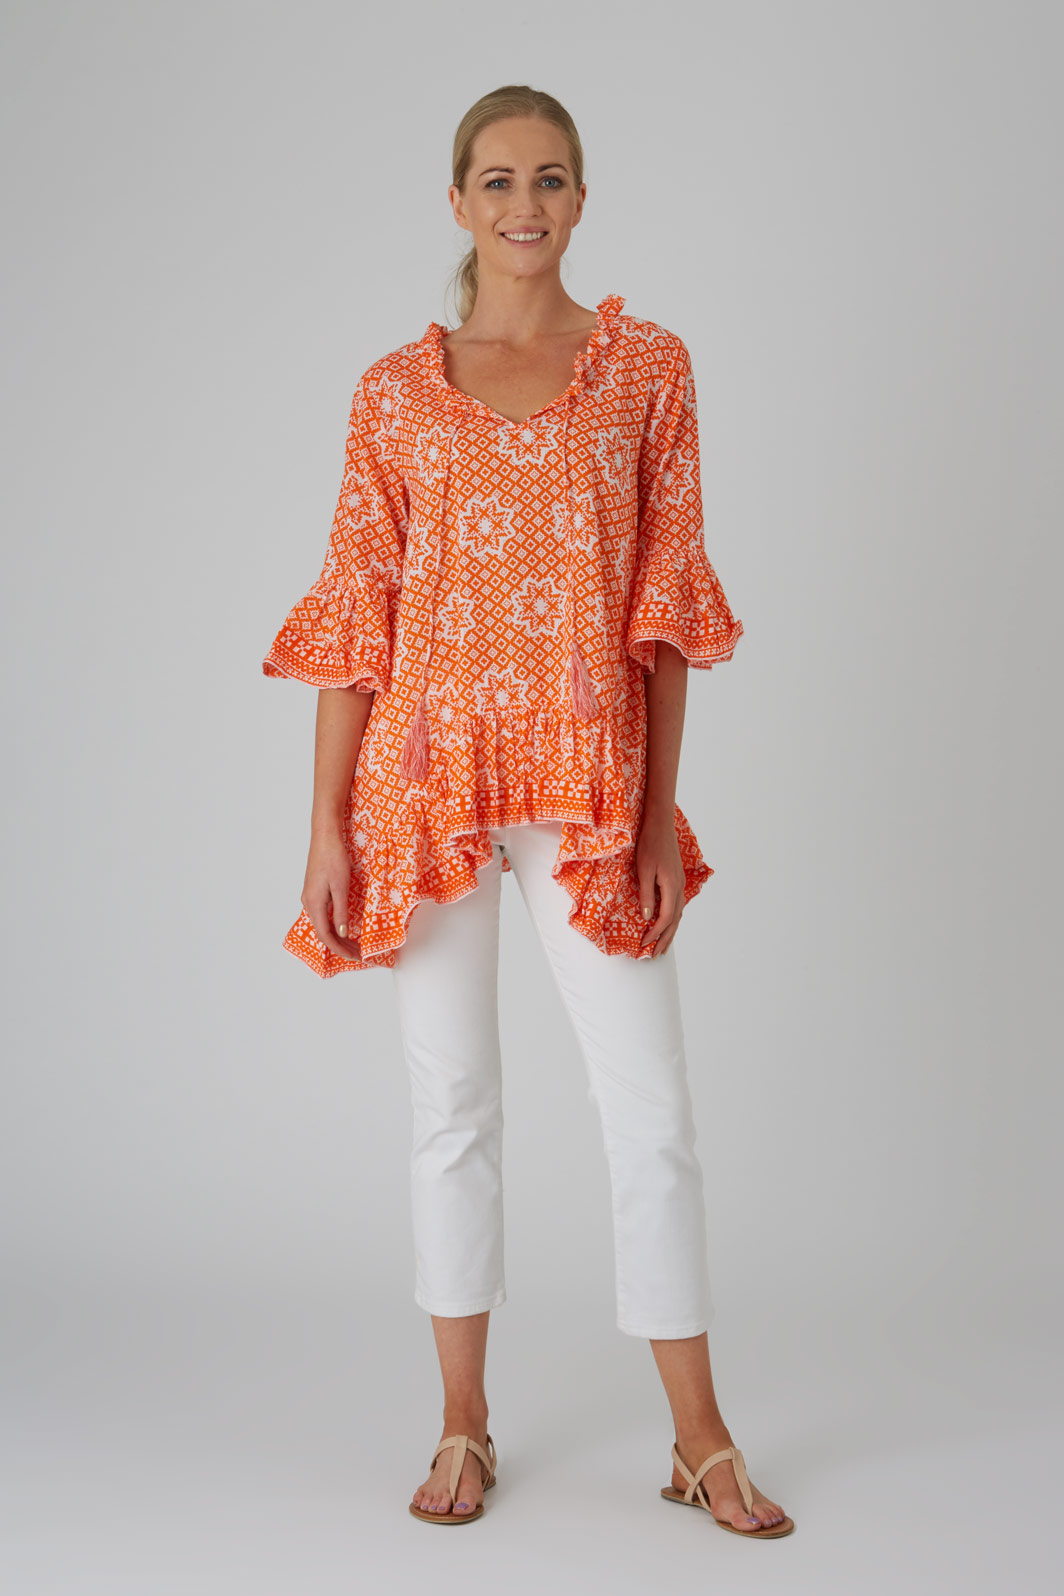 FREE SHIPPING AVAILABLE! Shop nakedprogrammzce.cf and save on Tunic Tops Tops.